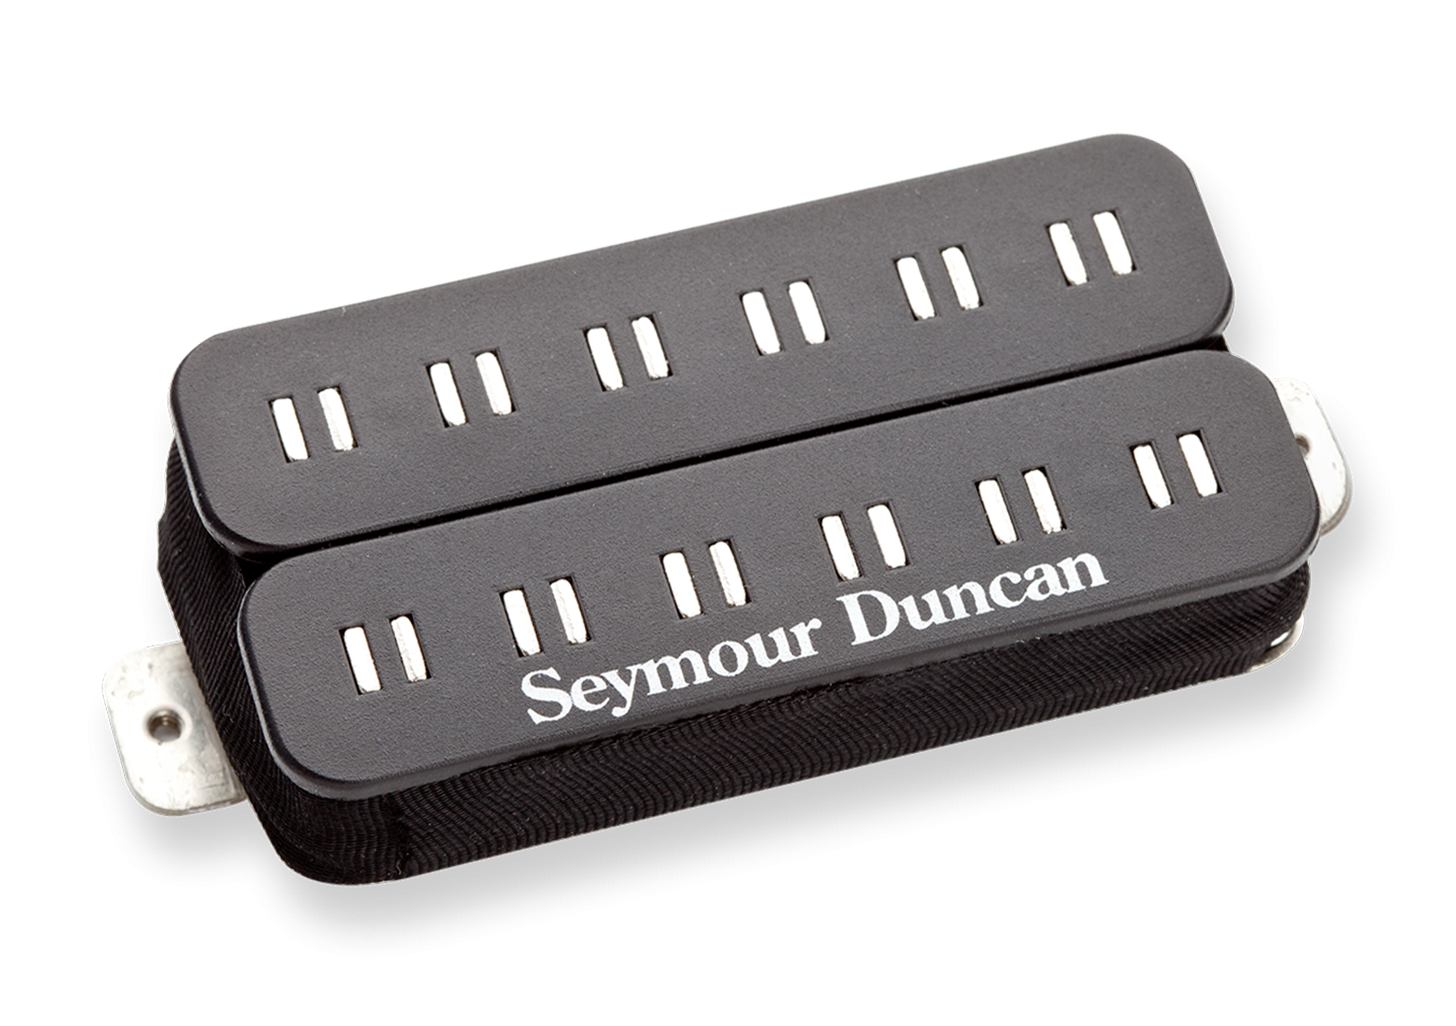 Seymour Duncan Parallel Axis Original Humbucker (PATB-1)